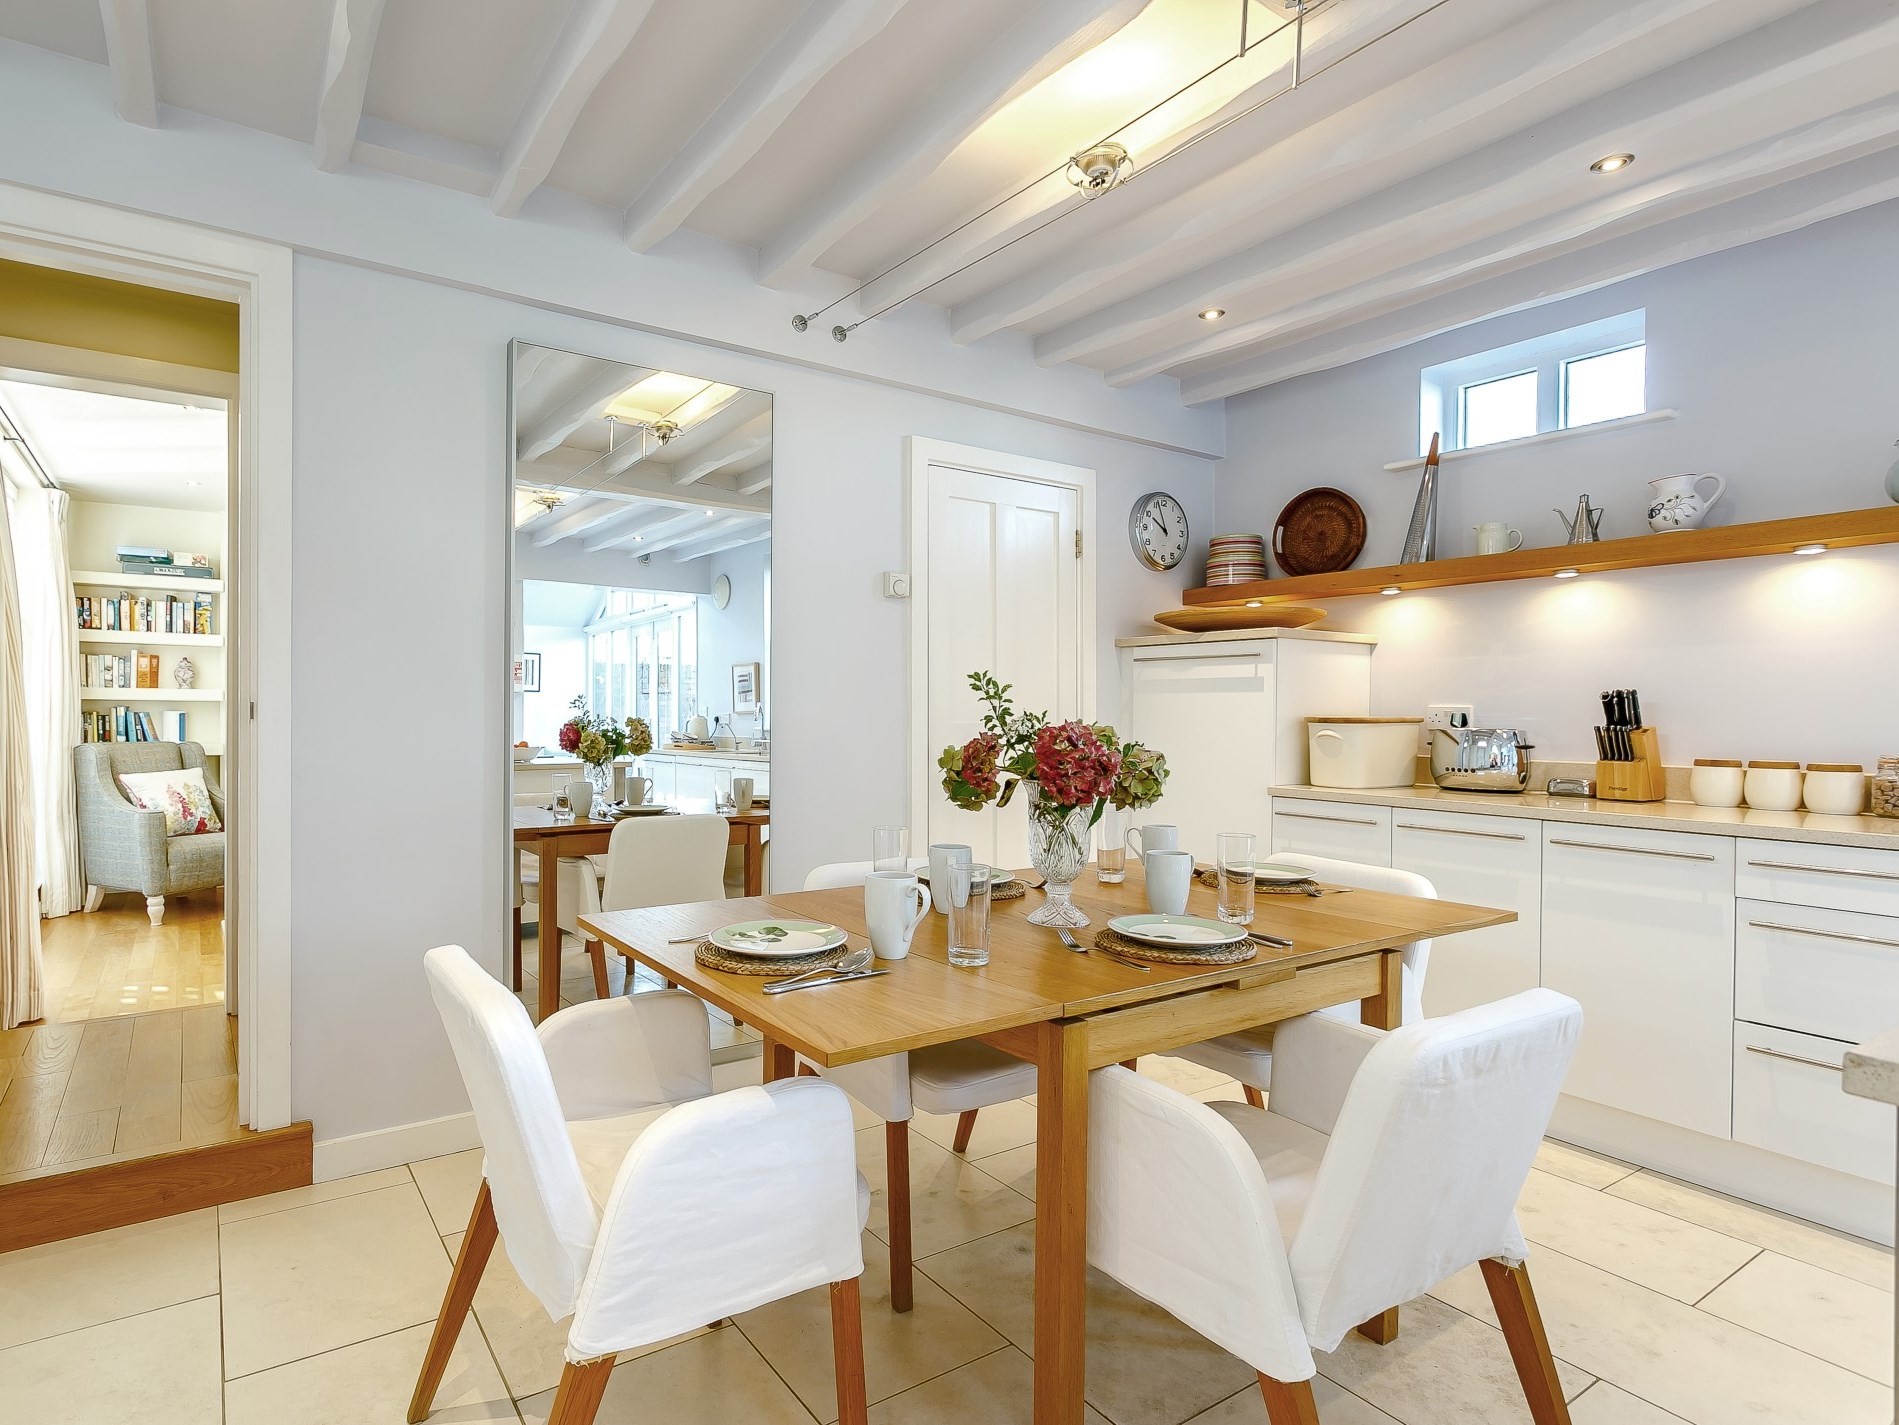 Enjoy family meals in the spacious kitchen/diner